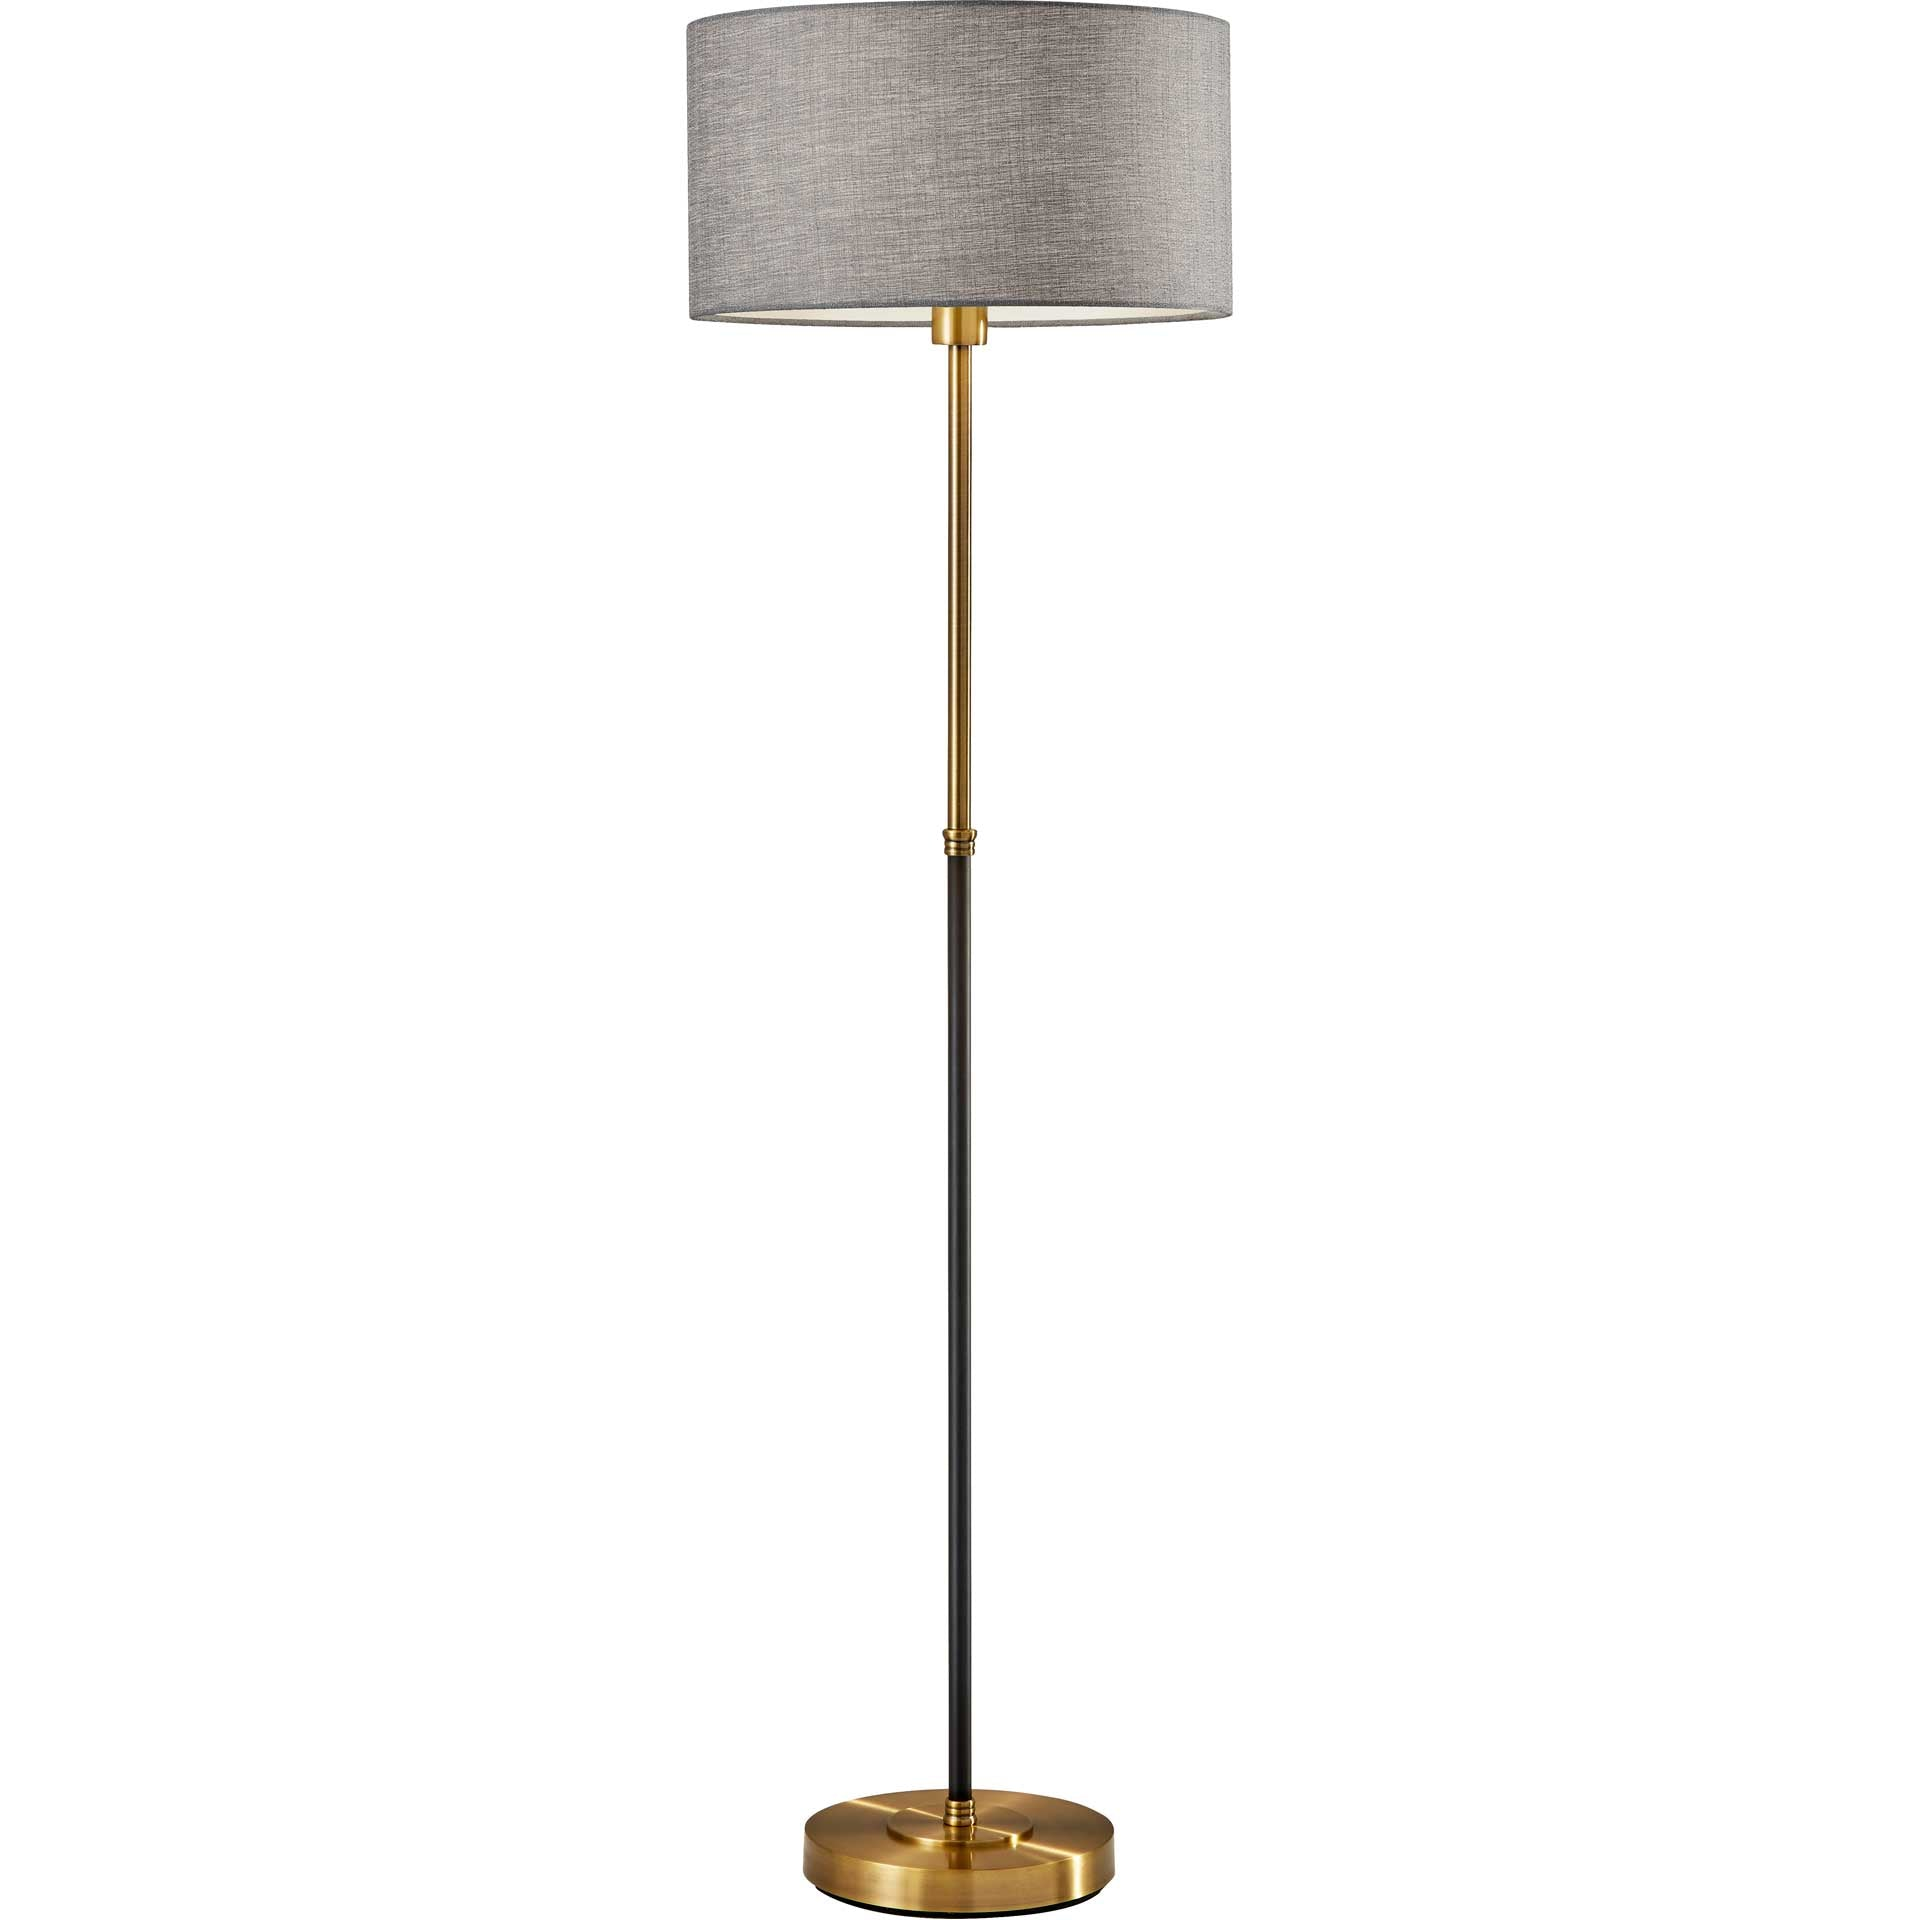 Begles Floor Lamp Black/Antique Brass